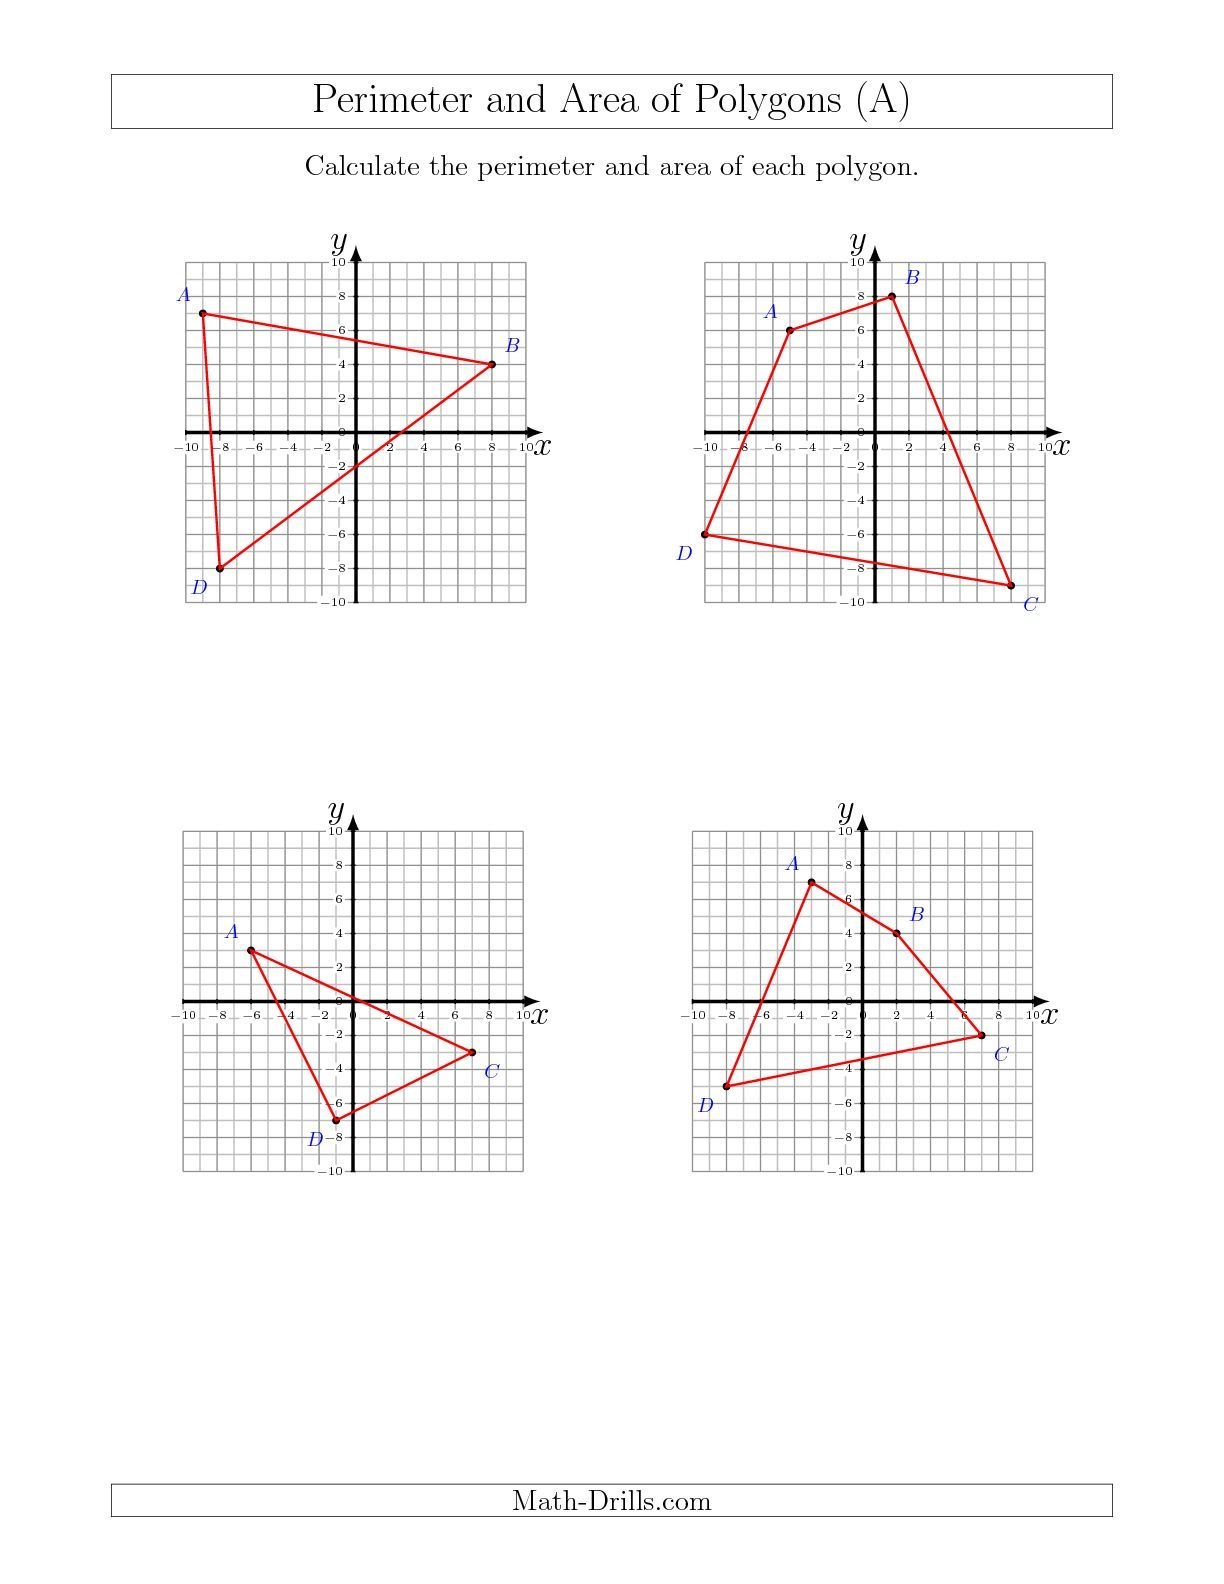 Worksheets Coordinate Plane Worksheets perimeter and area of polygons on coordinate planes a math worksheet freemath